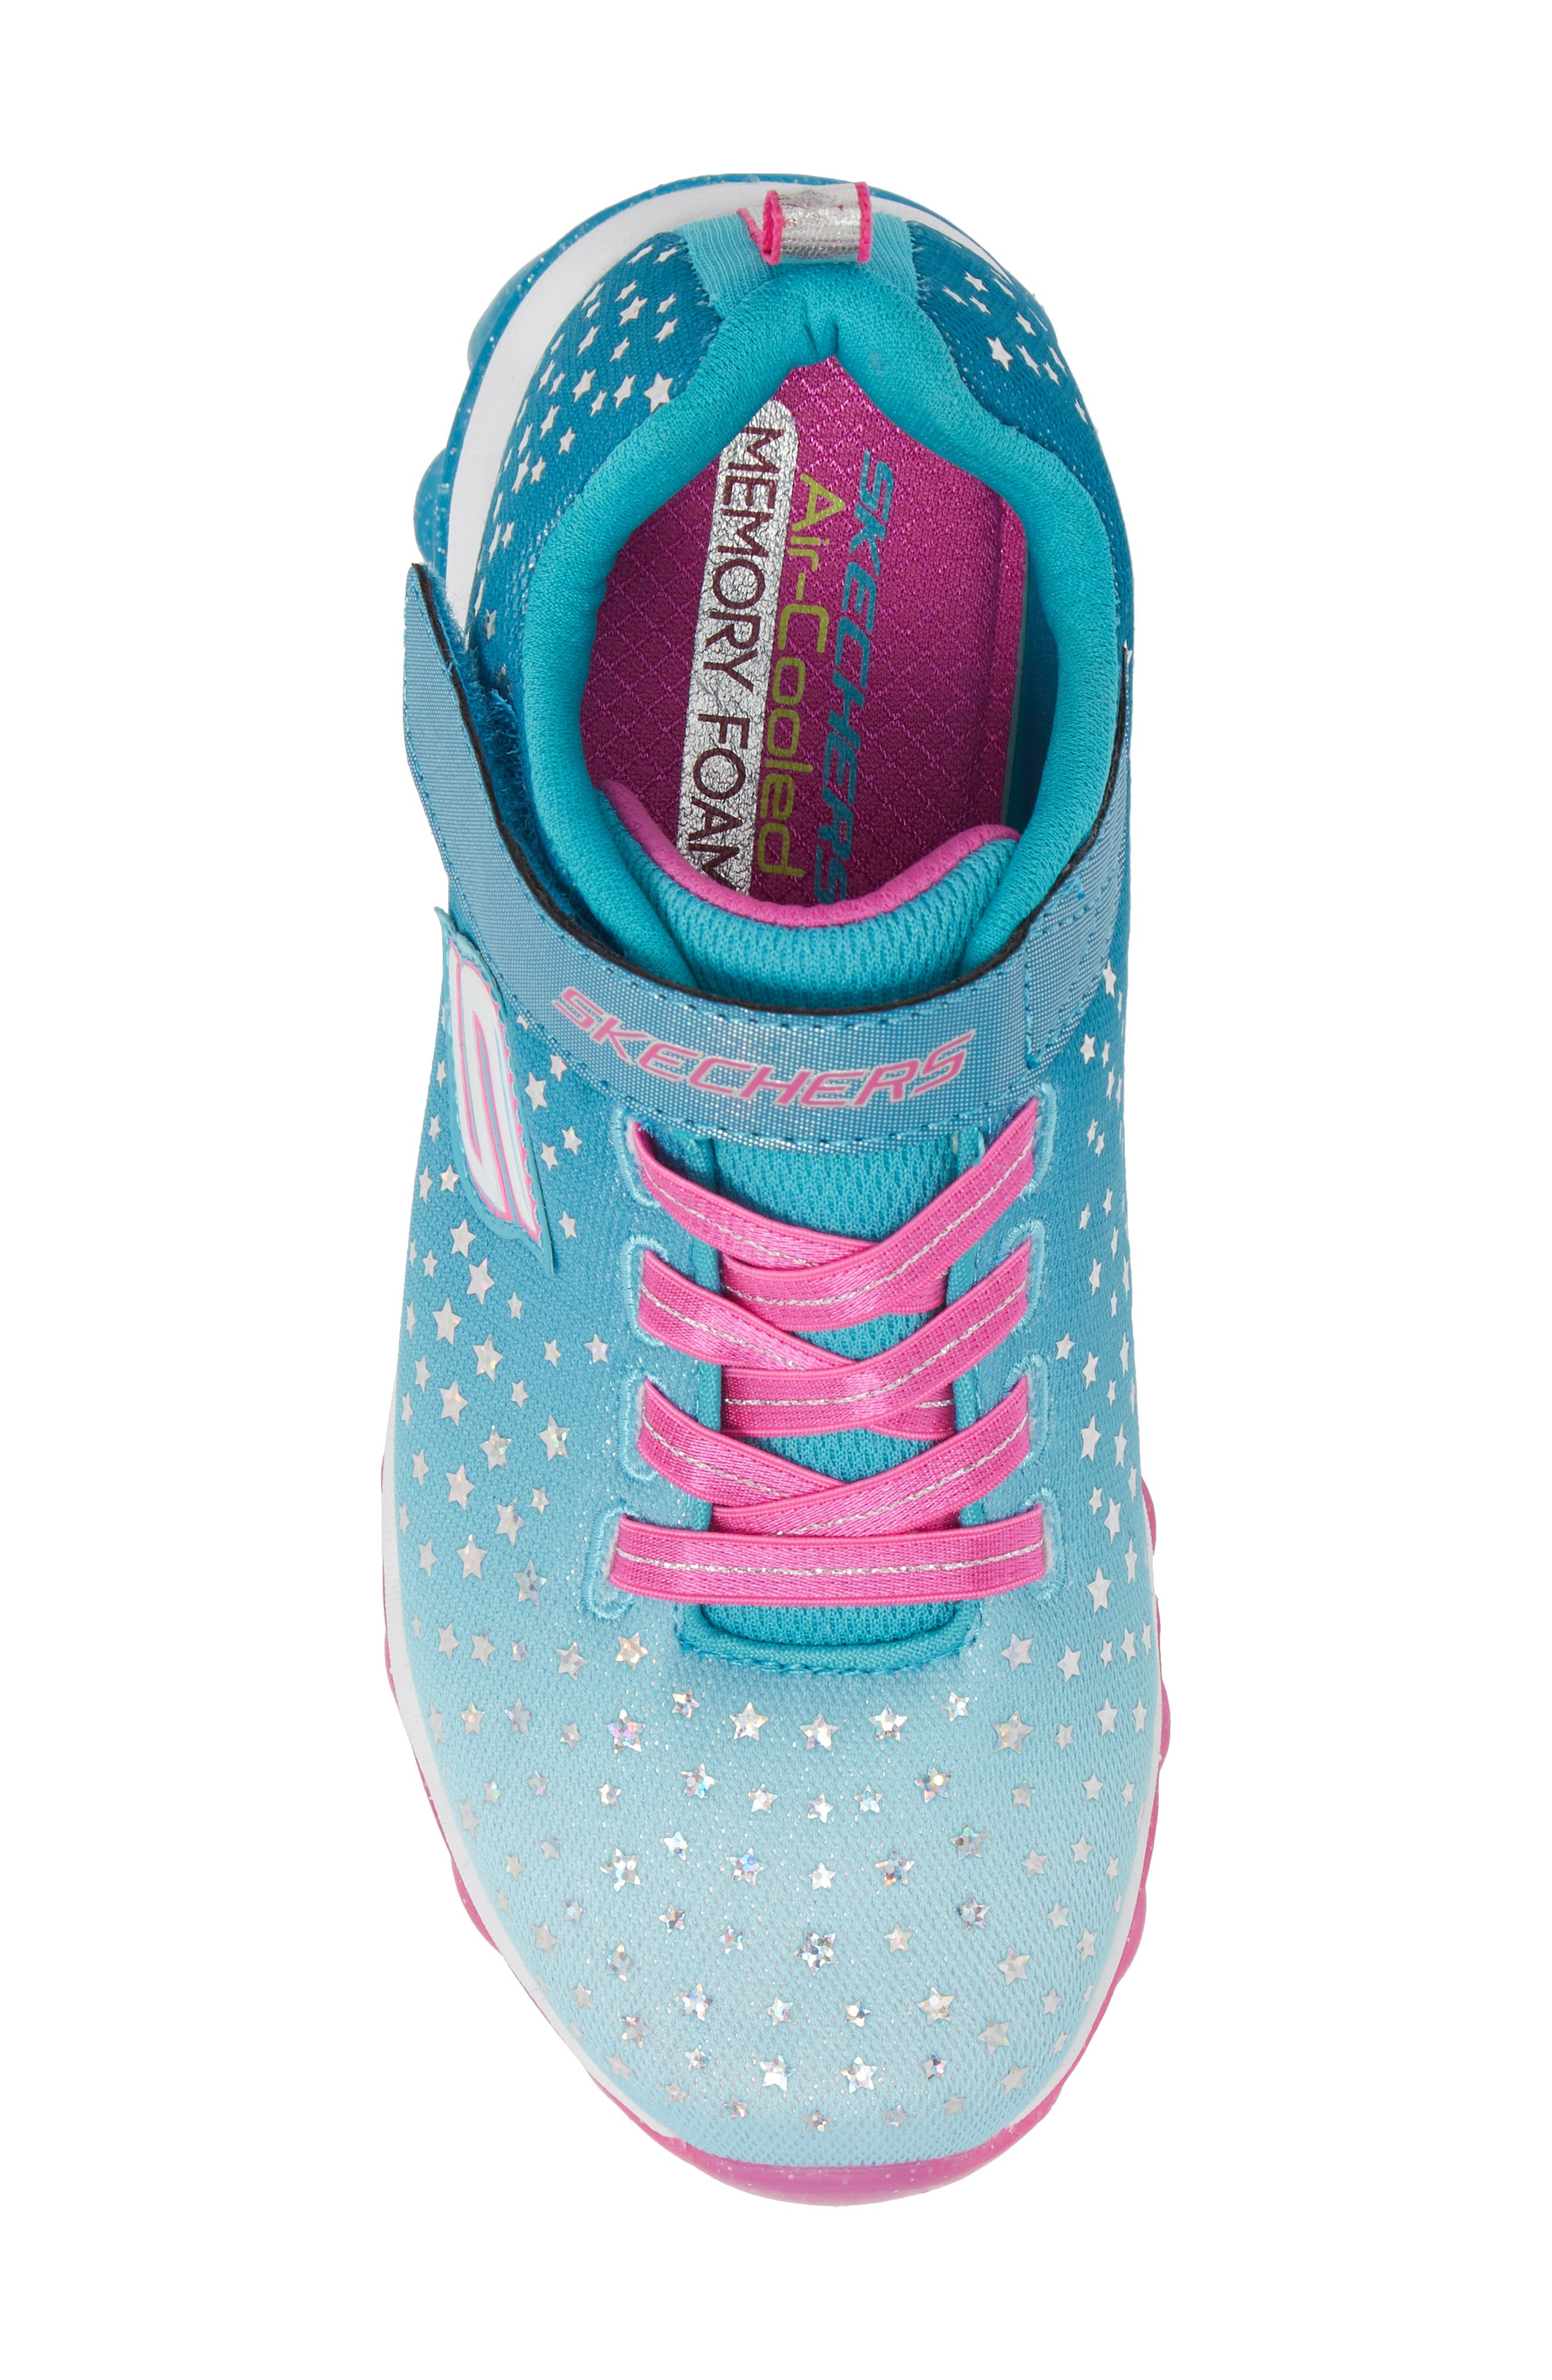 Skech-Air Ultra Glam It Up Sneaker,                             Alternate thumbnail 5, color,                             425